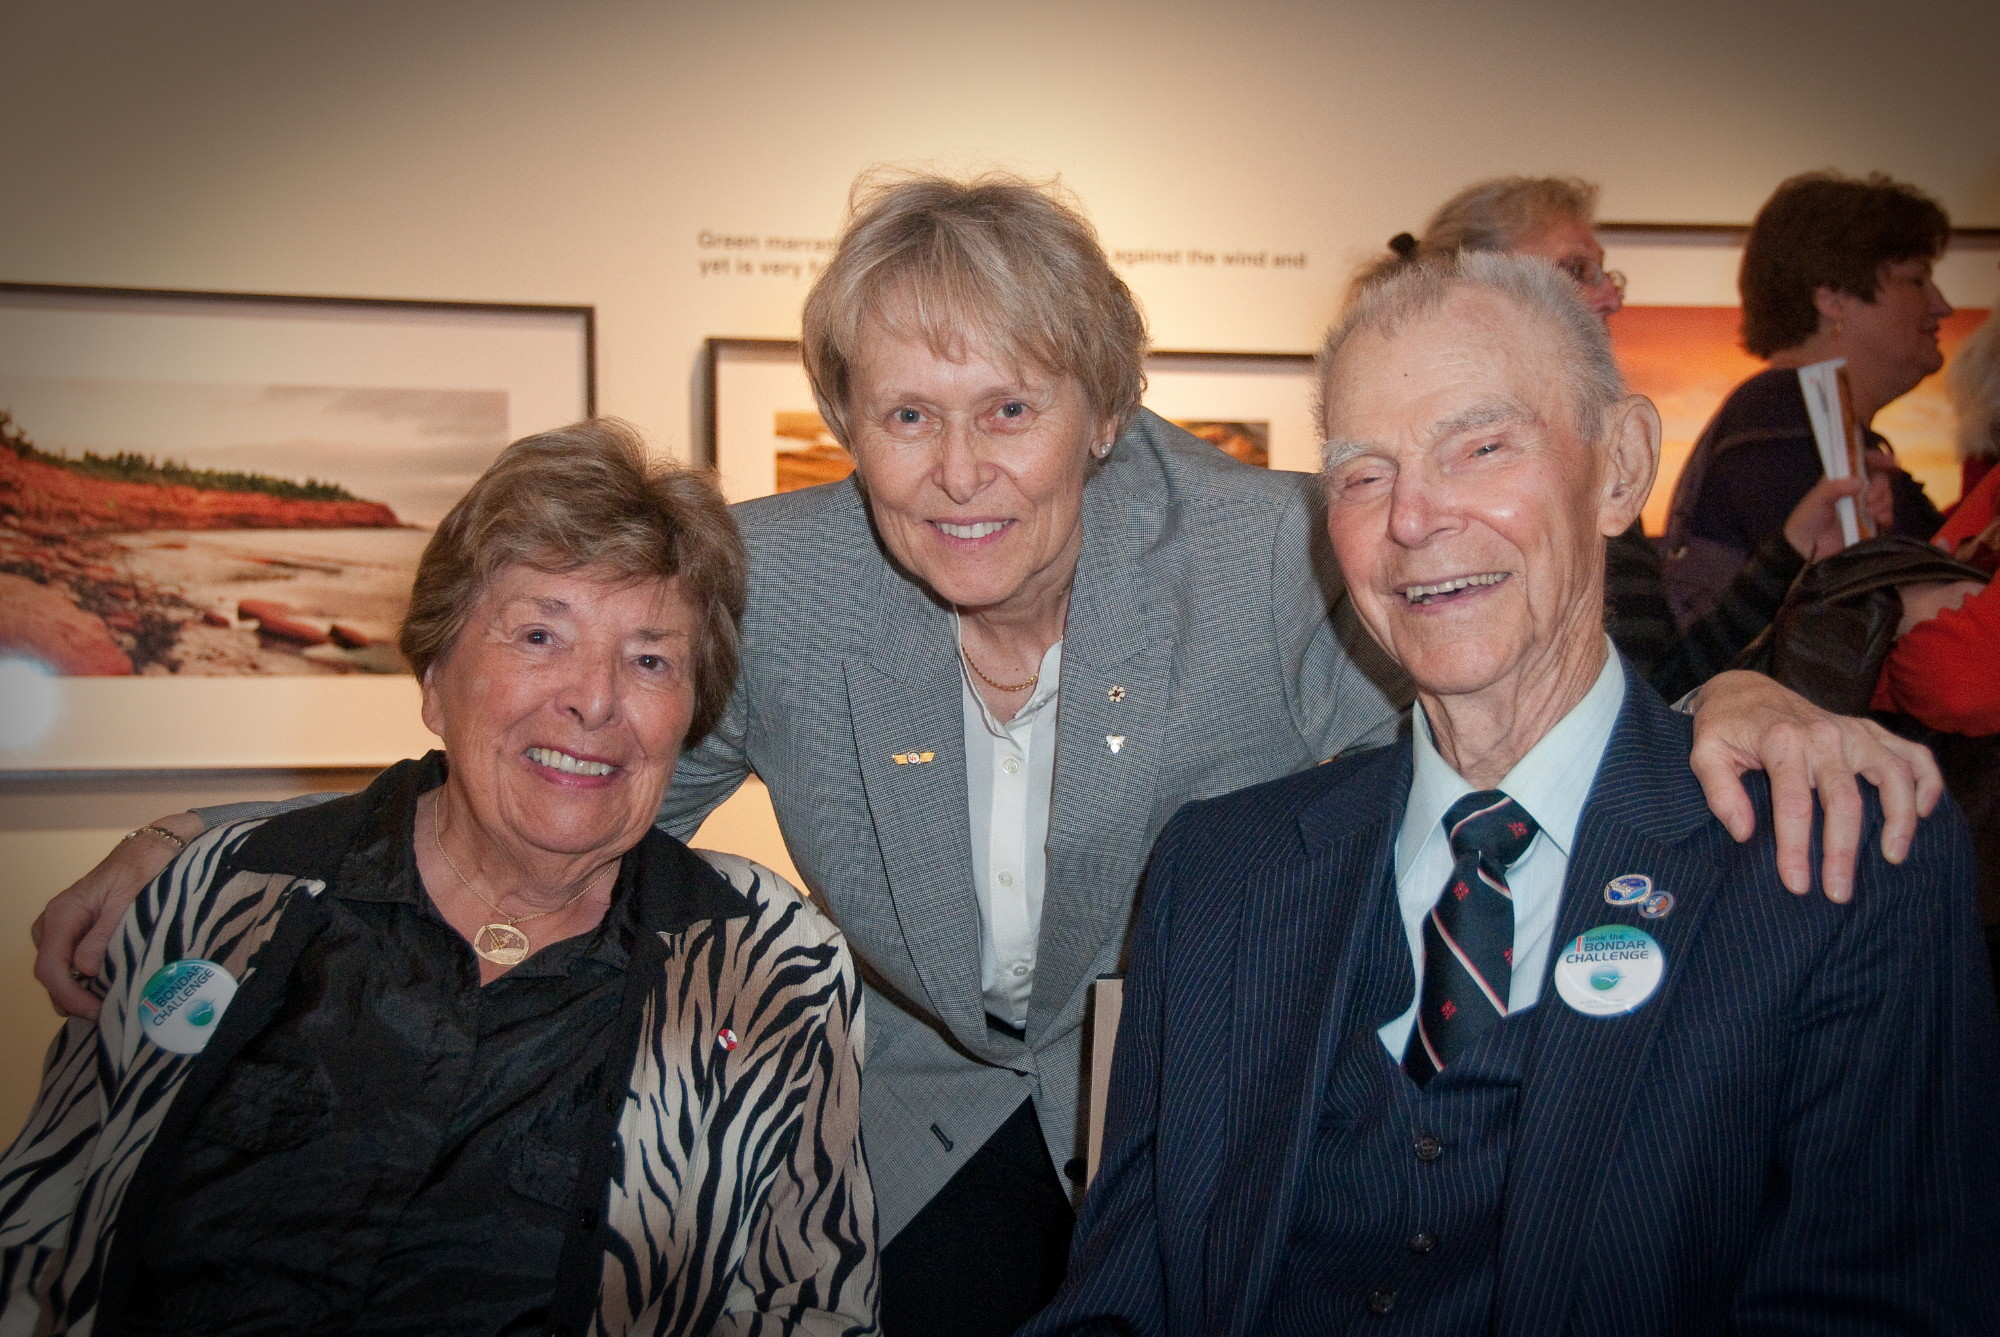 Dr Betty Roots, Dr Roberta Bondar and George Constable